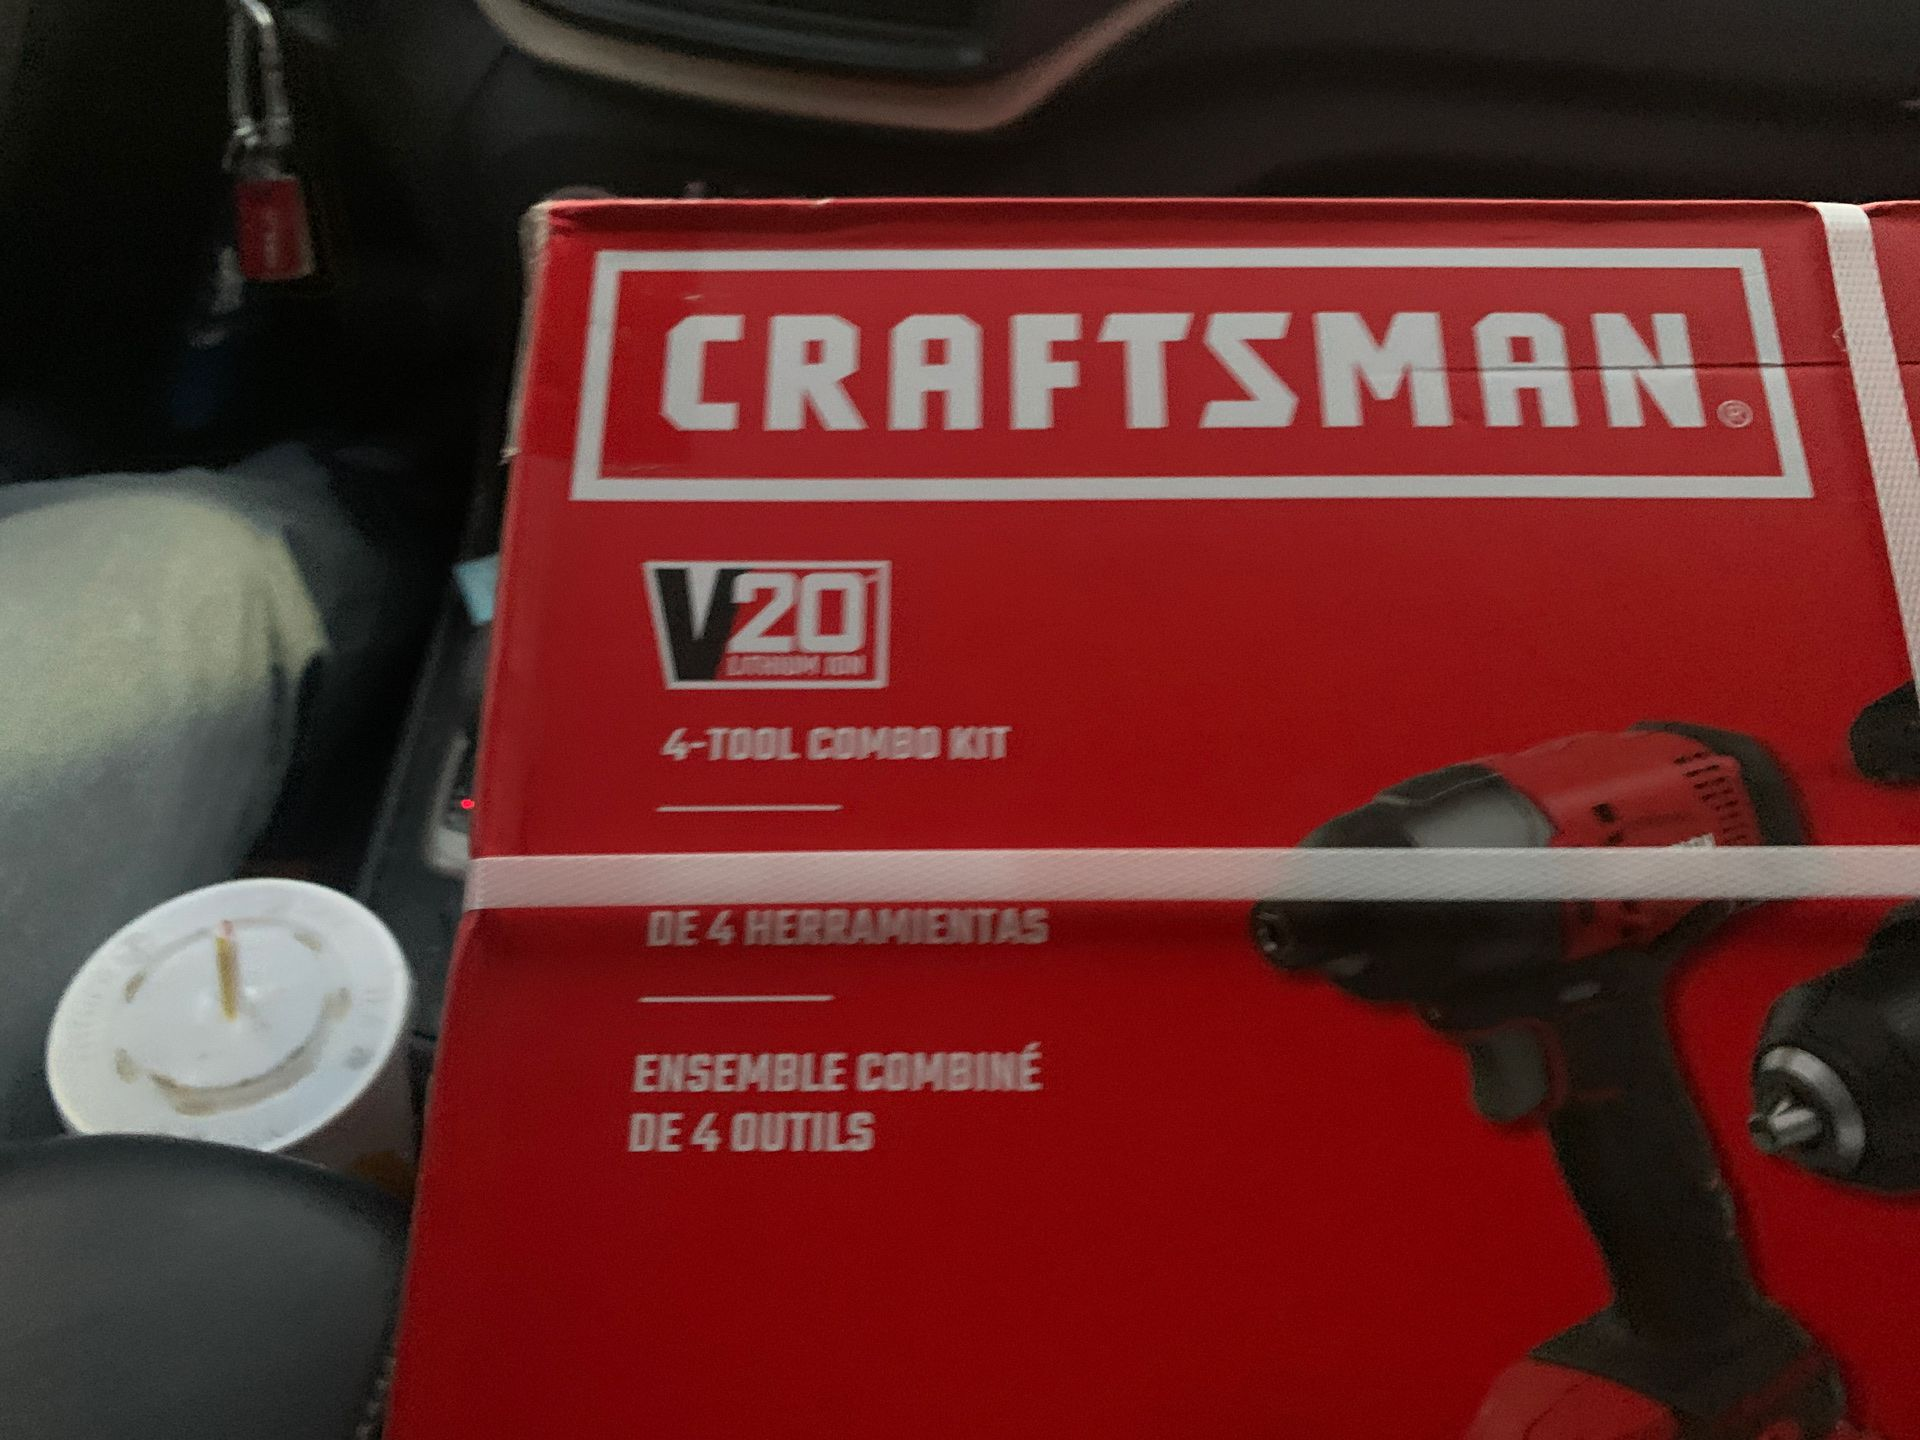 Craftsman v20 4 tool combo kit I have the gift reciept that has the full amount u can exchange at Home Depot